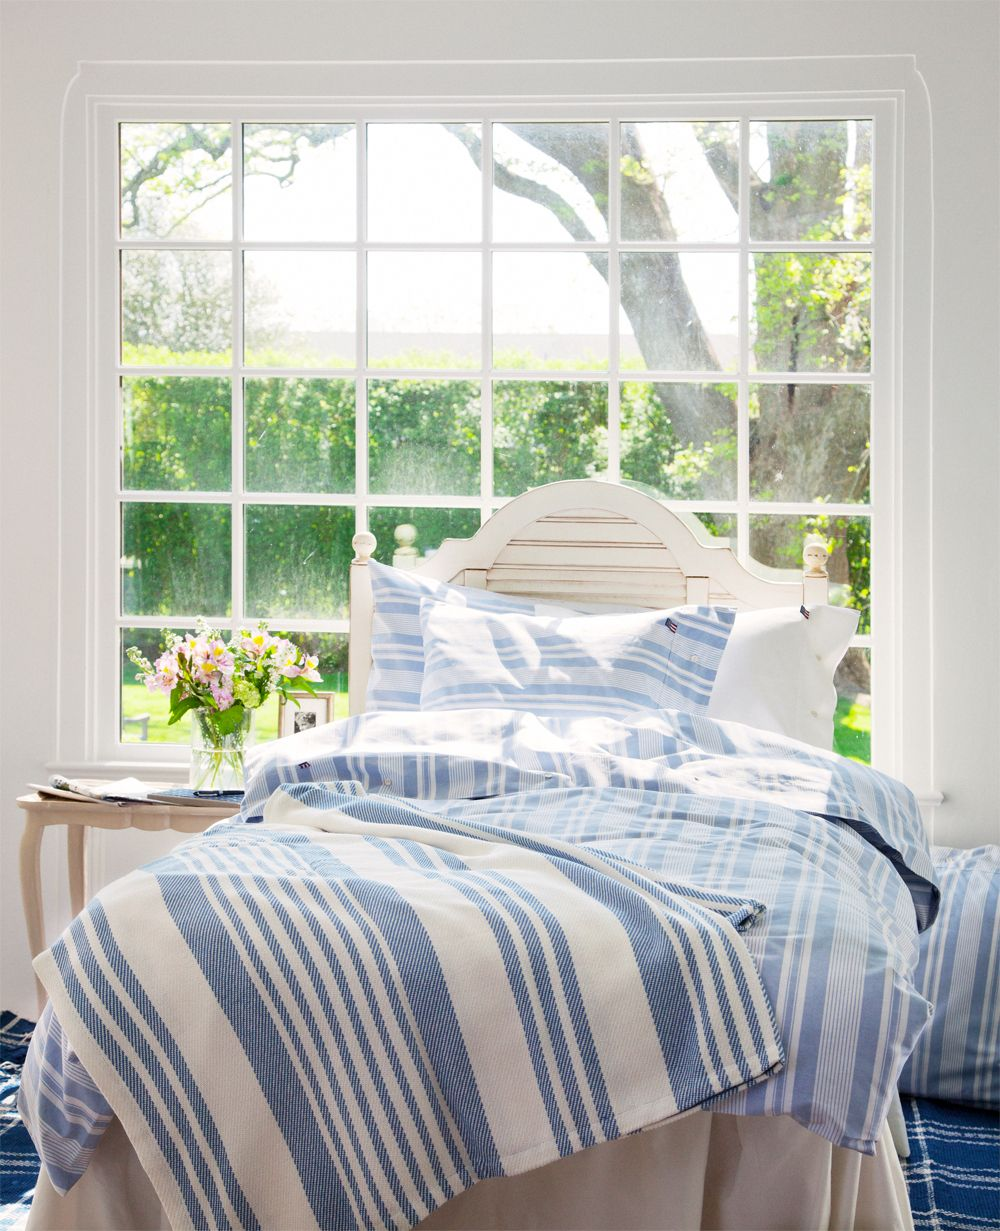 love that big window and the stripe blankets/linens Blue